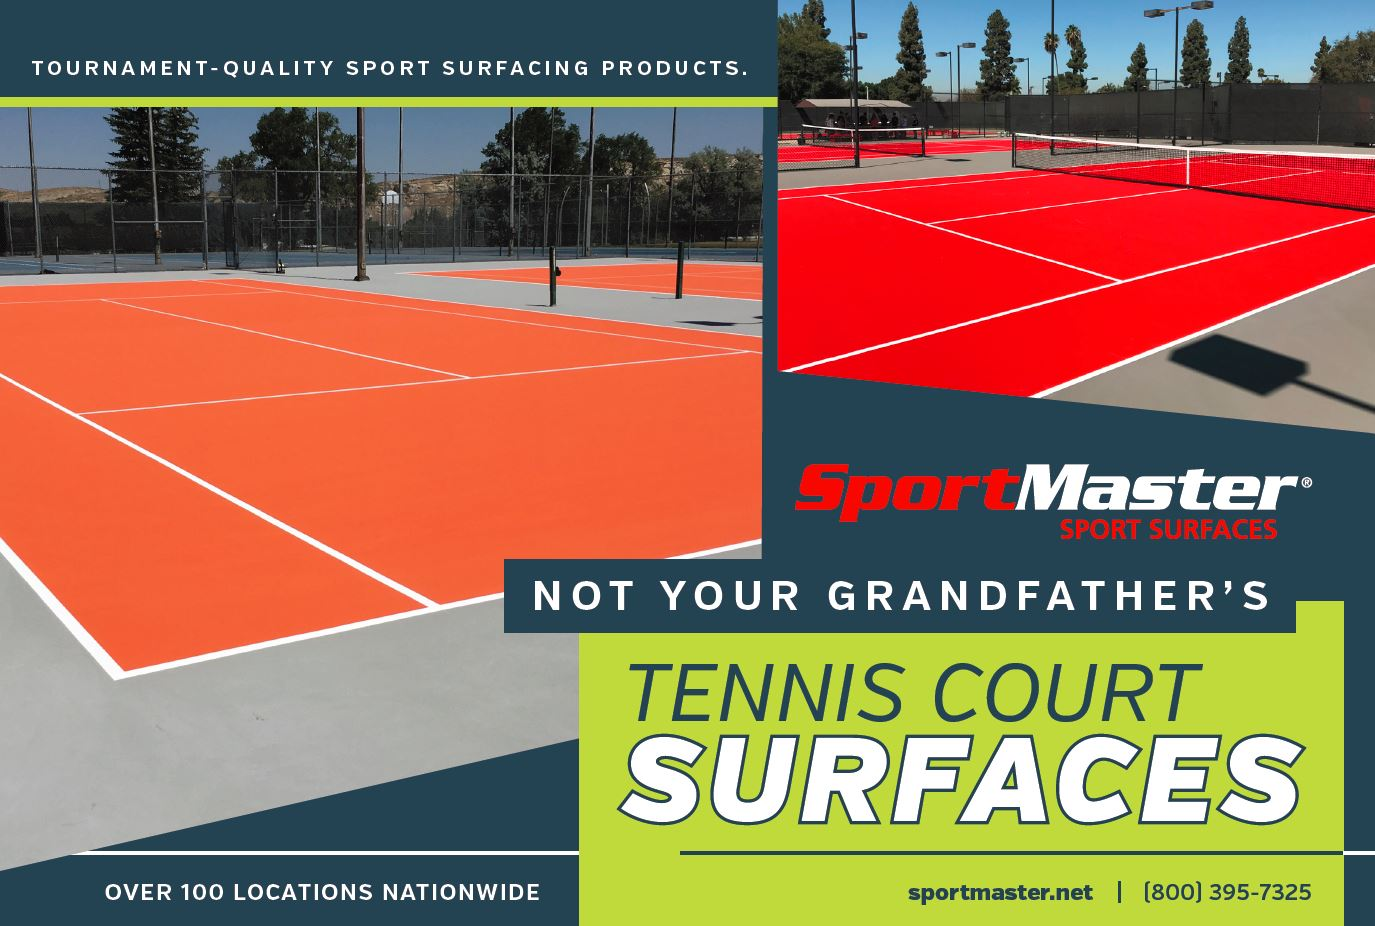 SportMaster Tennis Court Surfaces